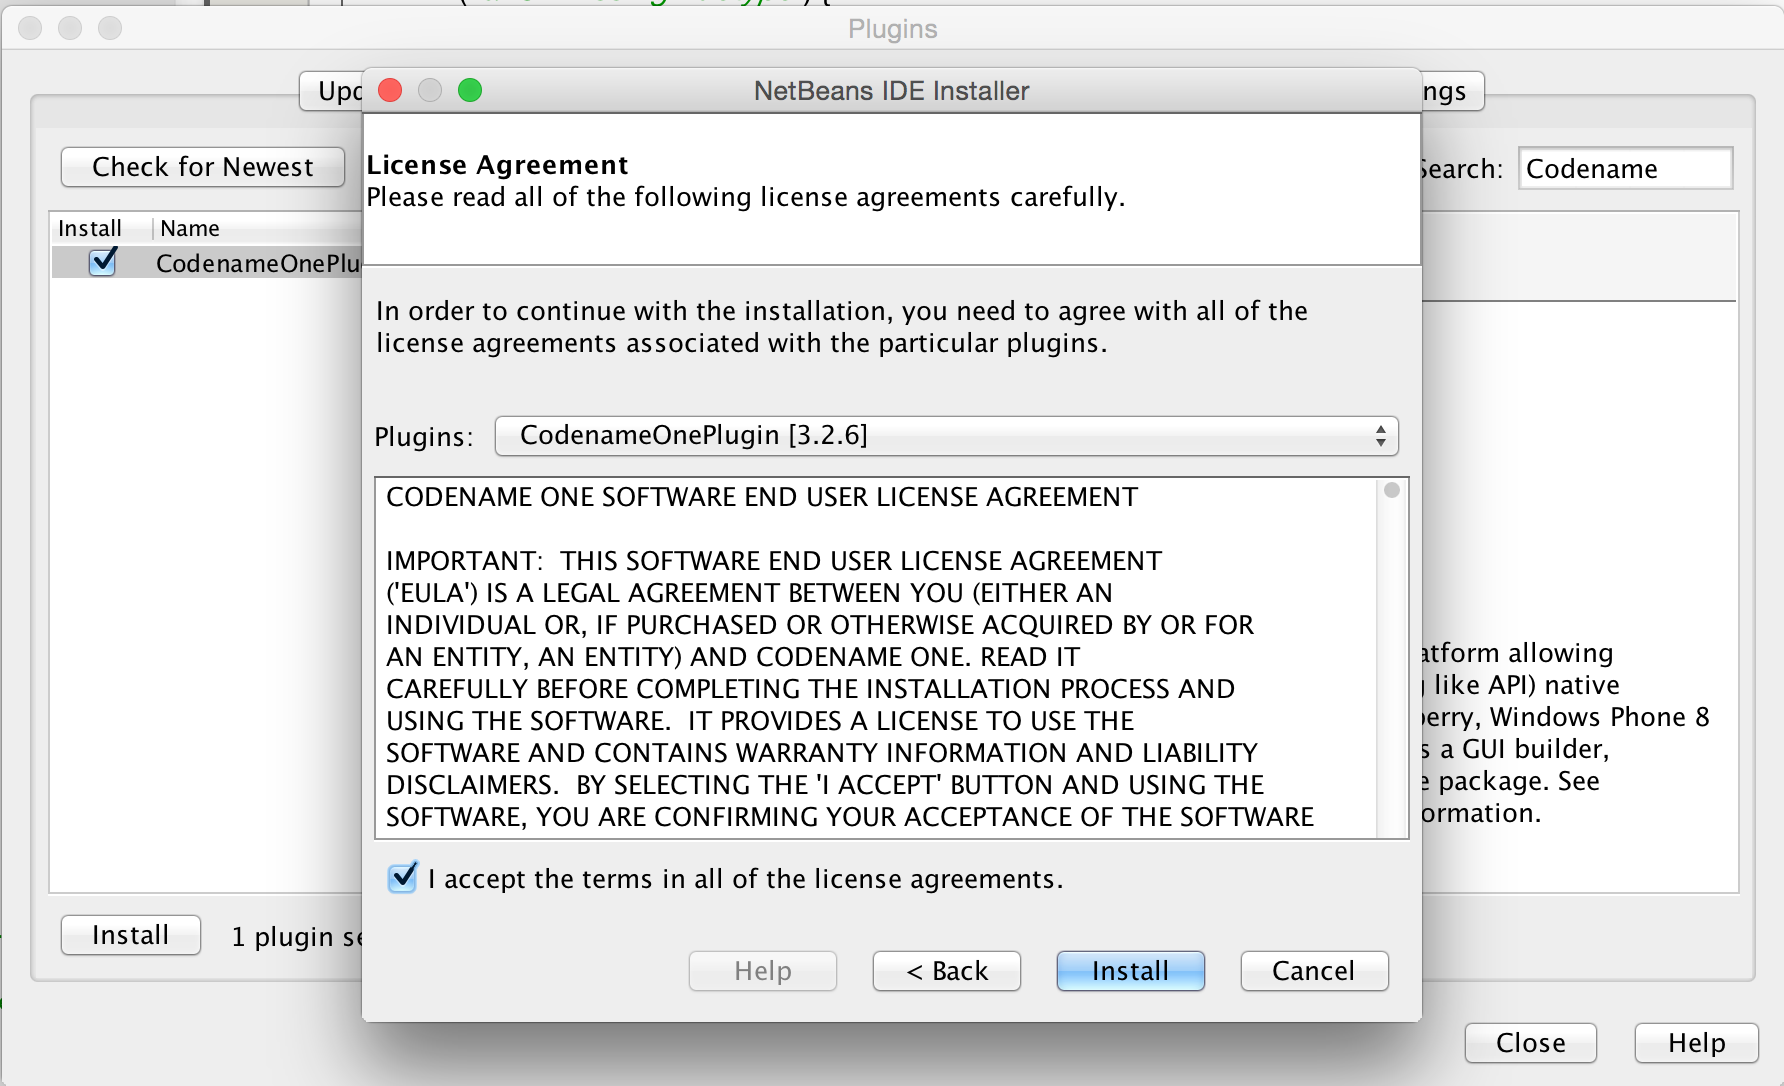 Netbeans Plugin Install Wizard step 2